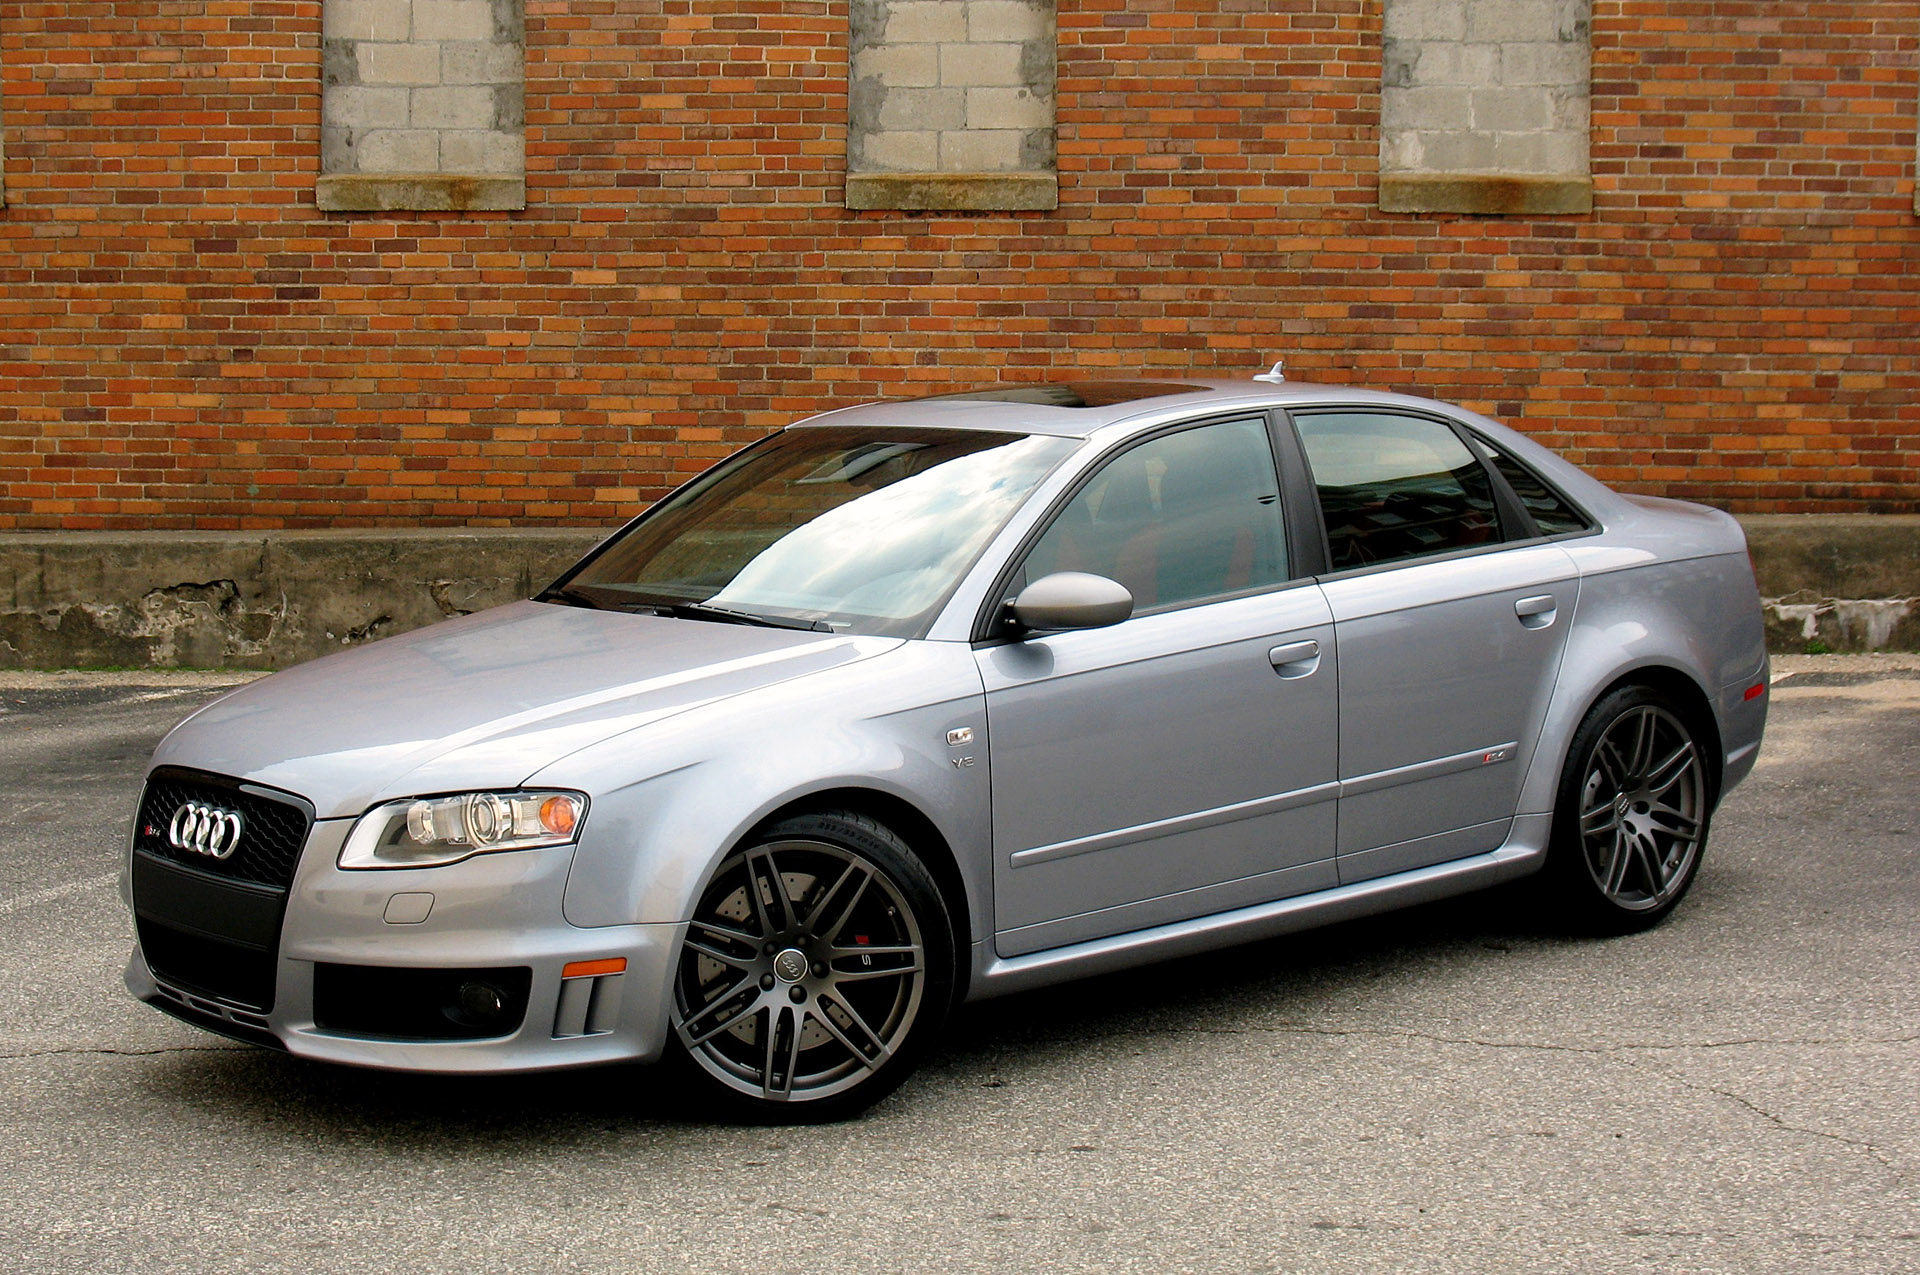 2008 Audi Rs 4 Image 11